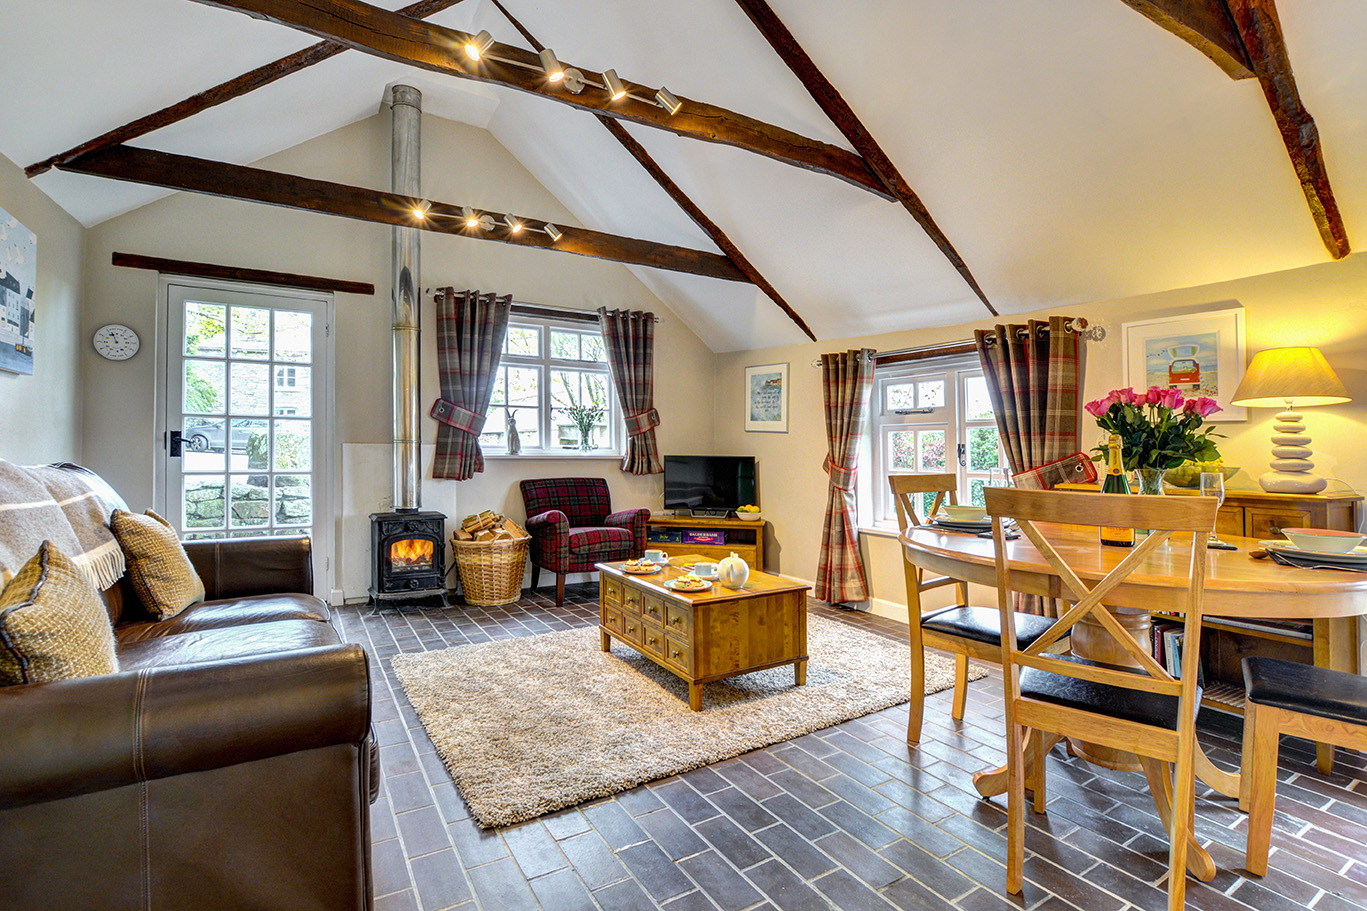 The lounge and dining area of The Linney self catering cottage converted barn at Penrose Burden holiday cottages in Cornwall.jpg